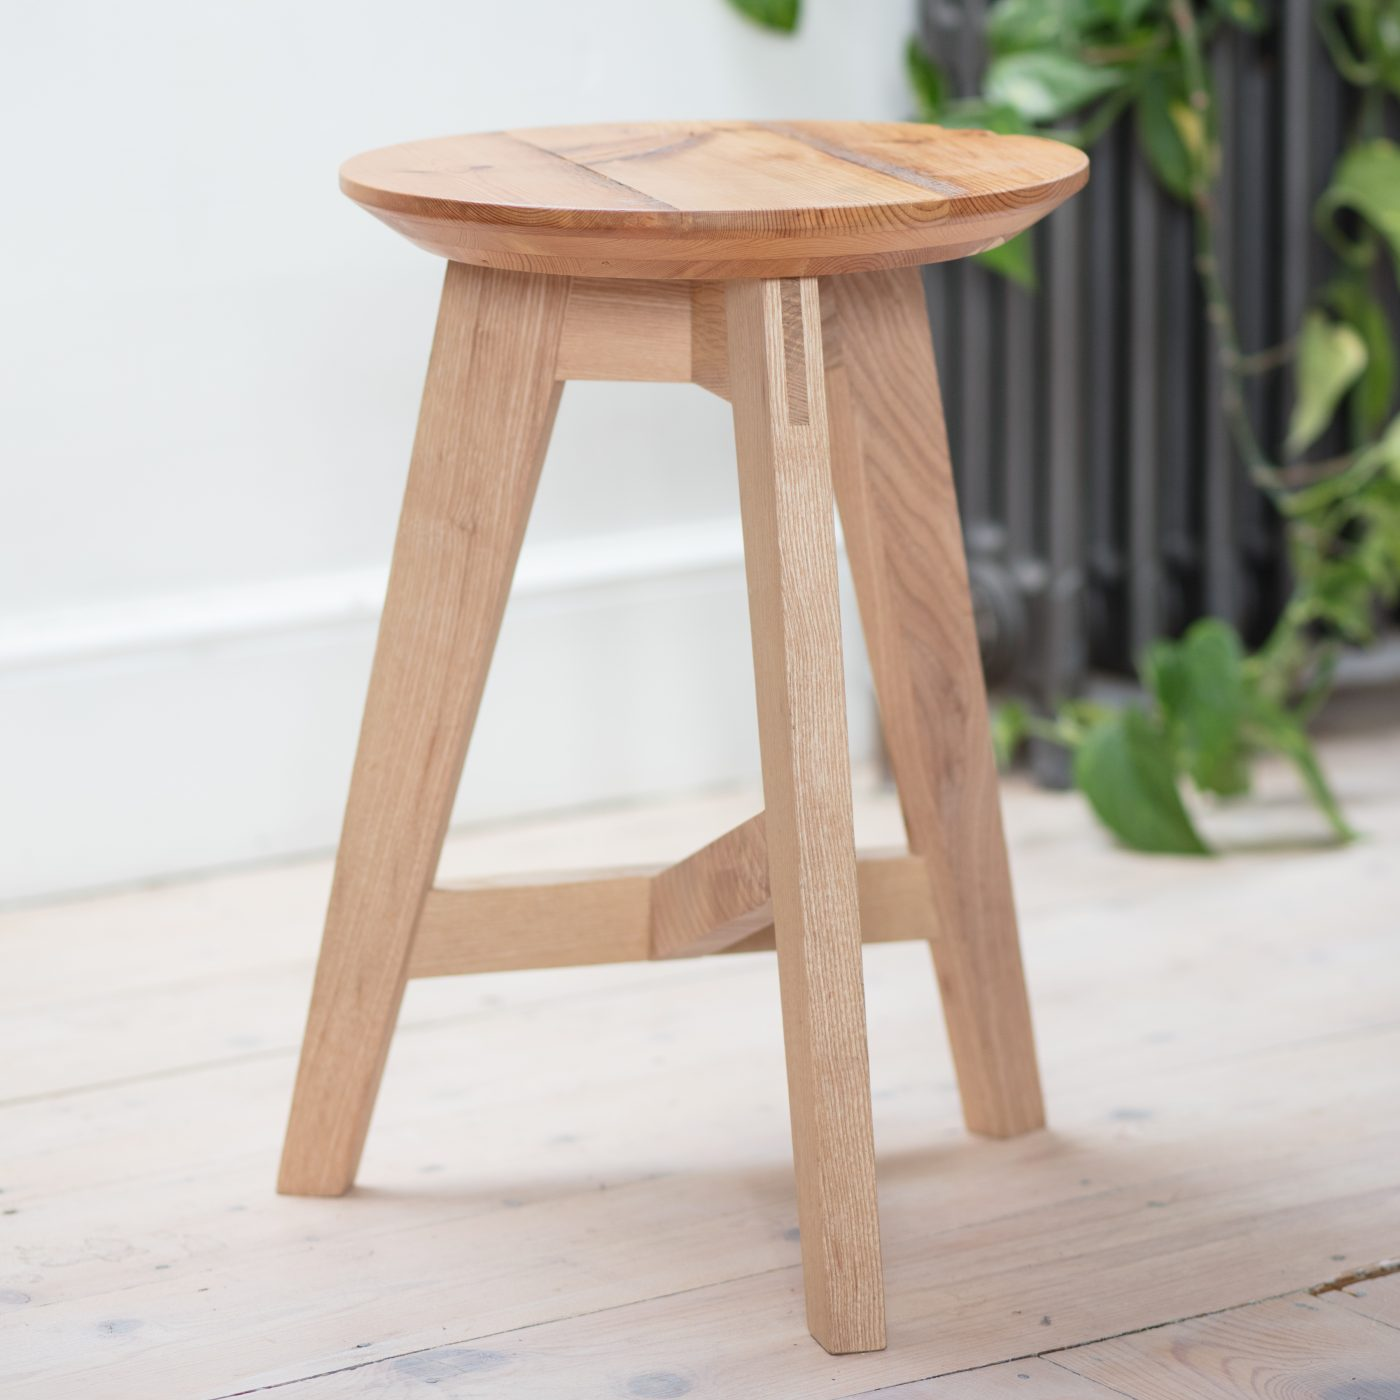 Jan Hendzel Studio college stool